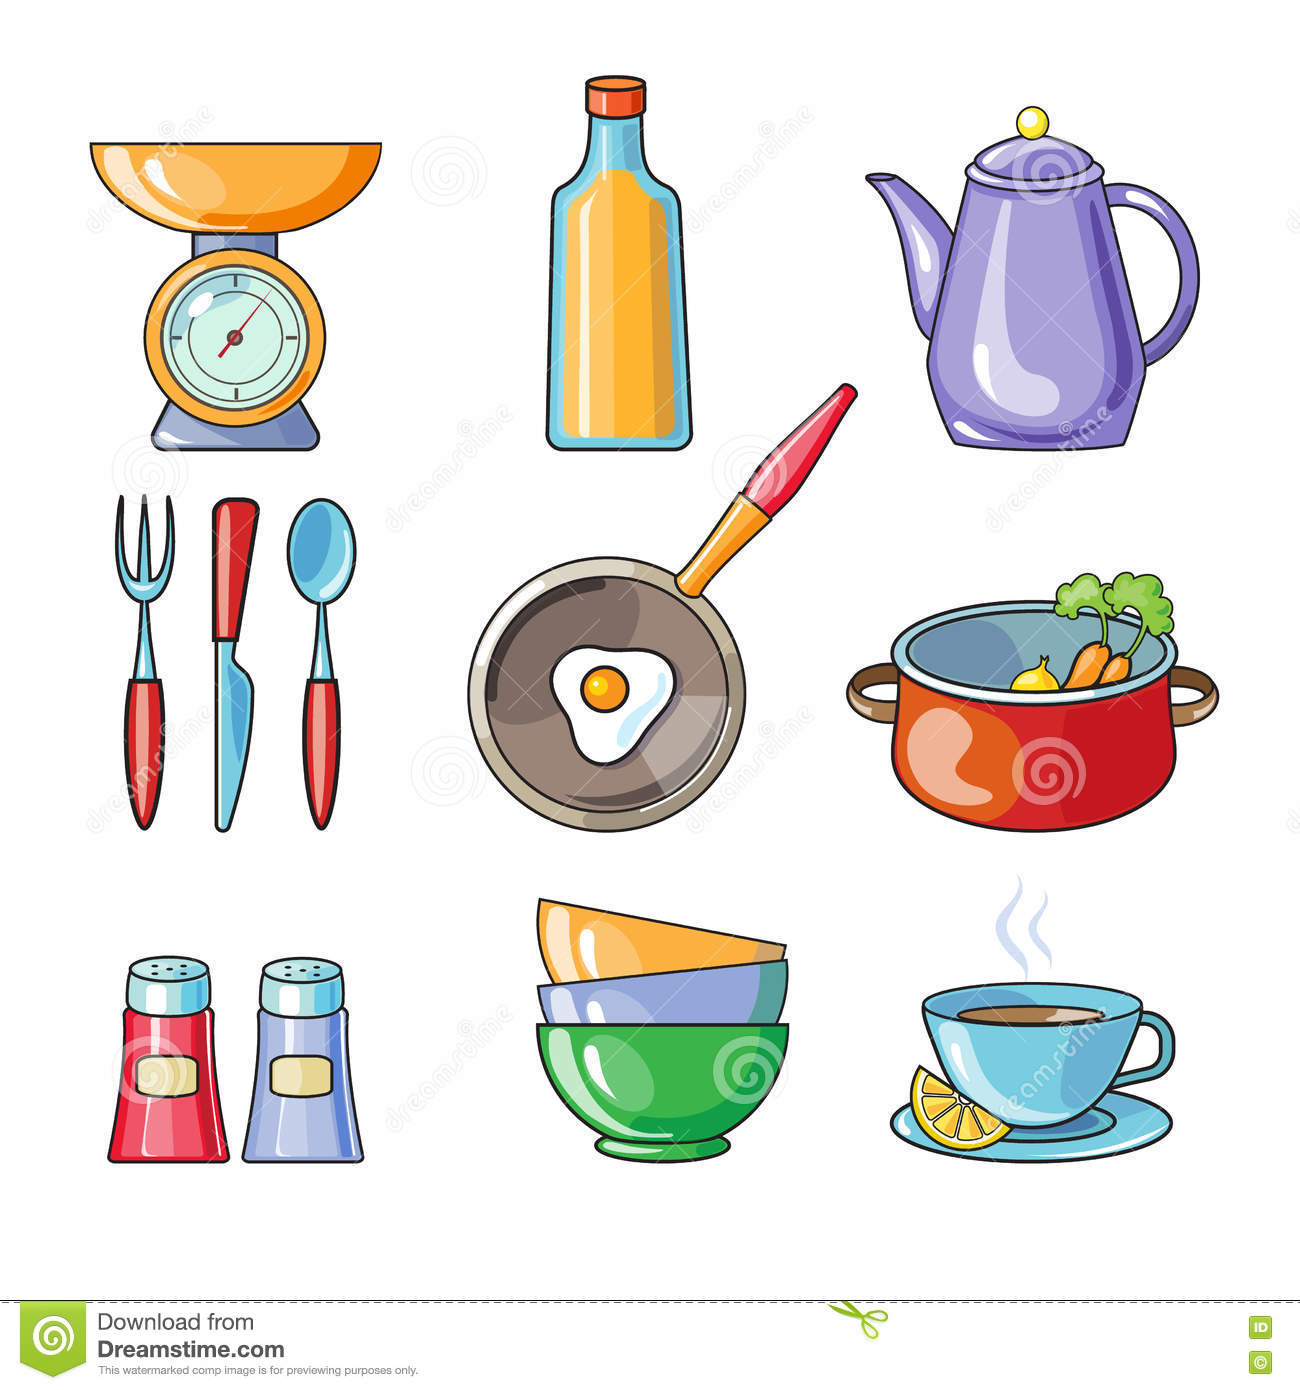 Kitchen Equipment Clip Art ~ Kitchen tools and equipment clipart clipground